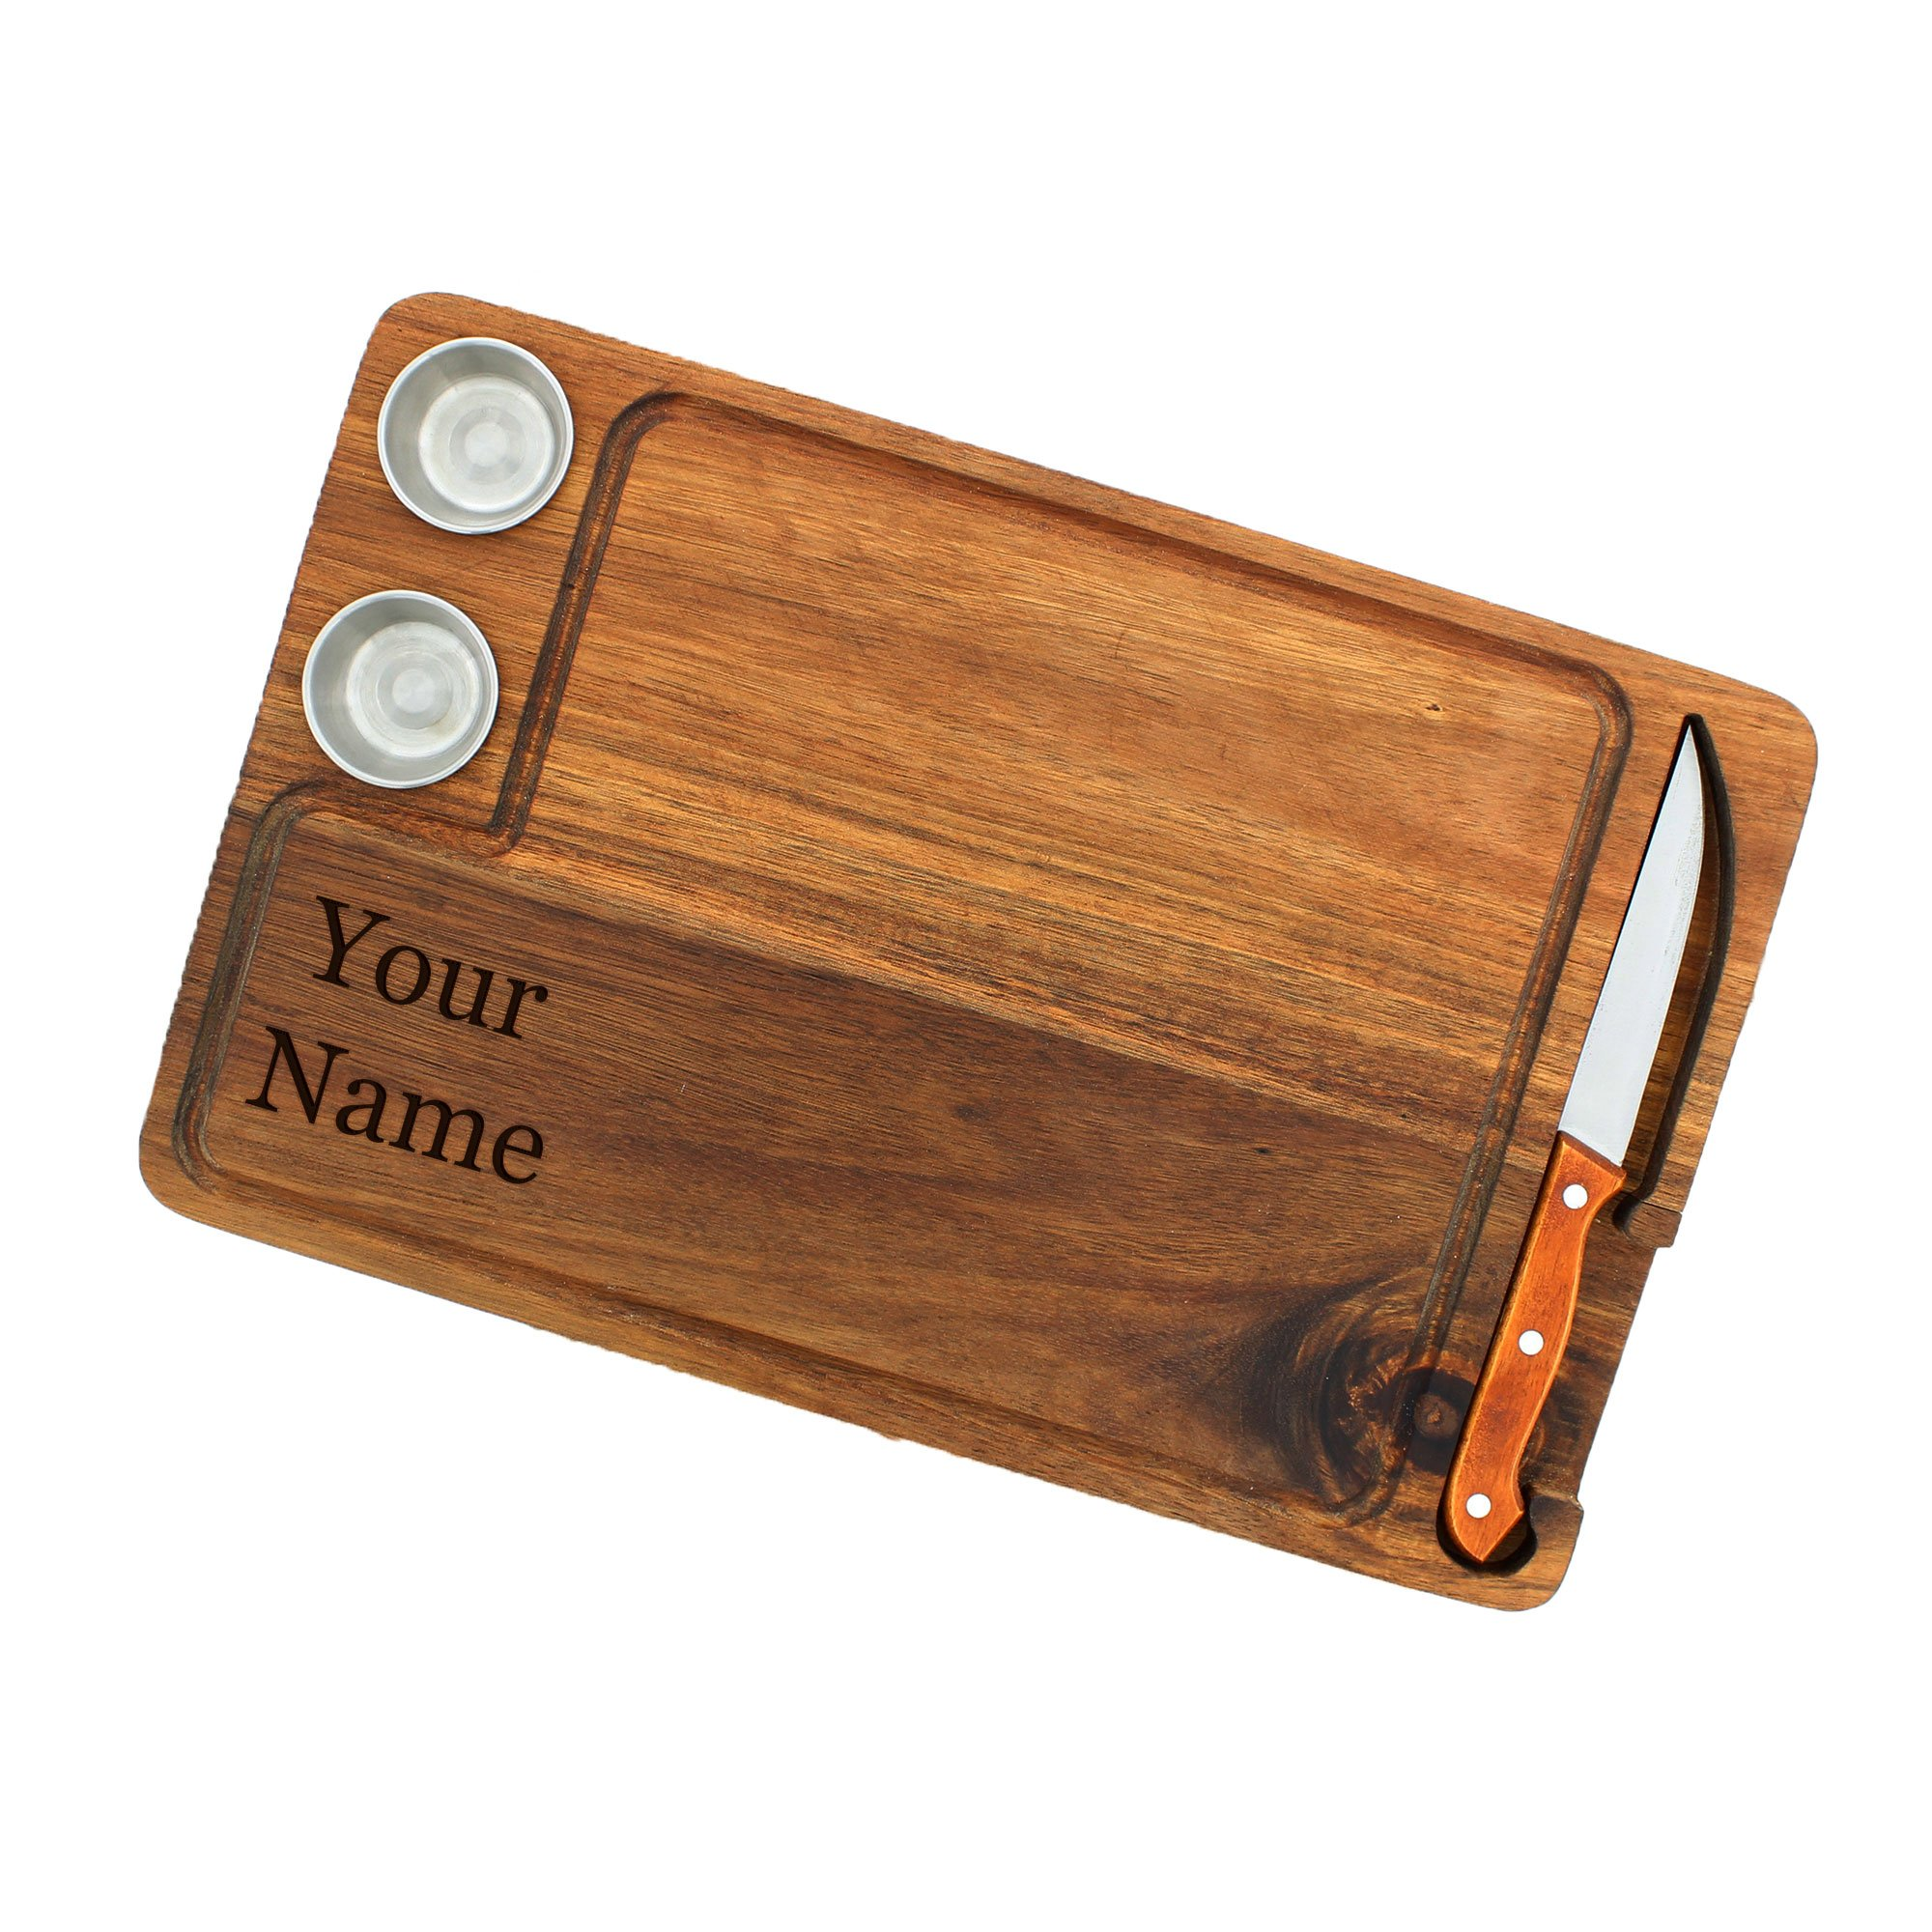 Yukon Glory Premium Wooden Steak Serving Board with Knife & Condiment Cups Superior Acadia Wood With Your Name On It